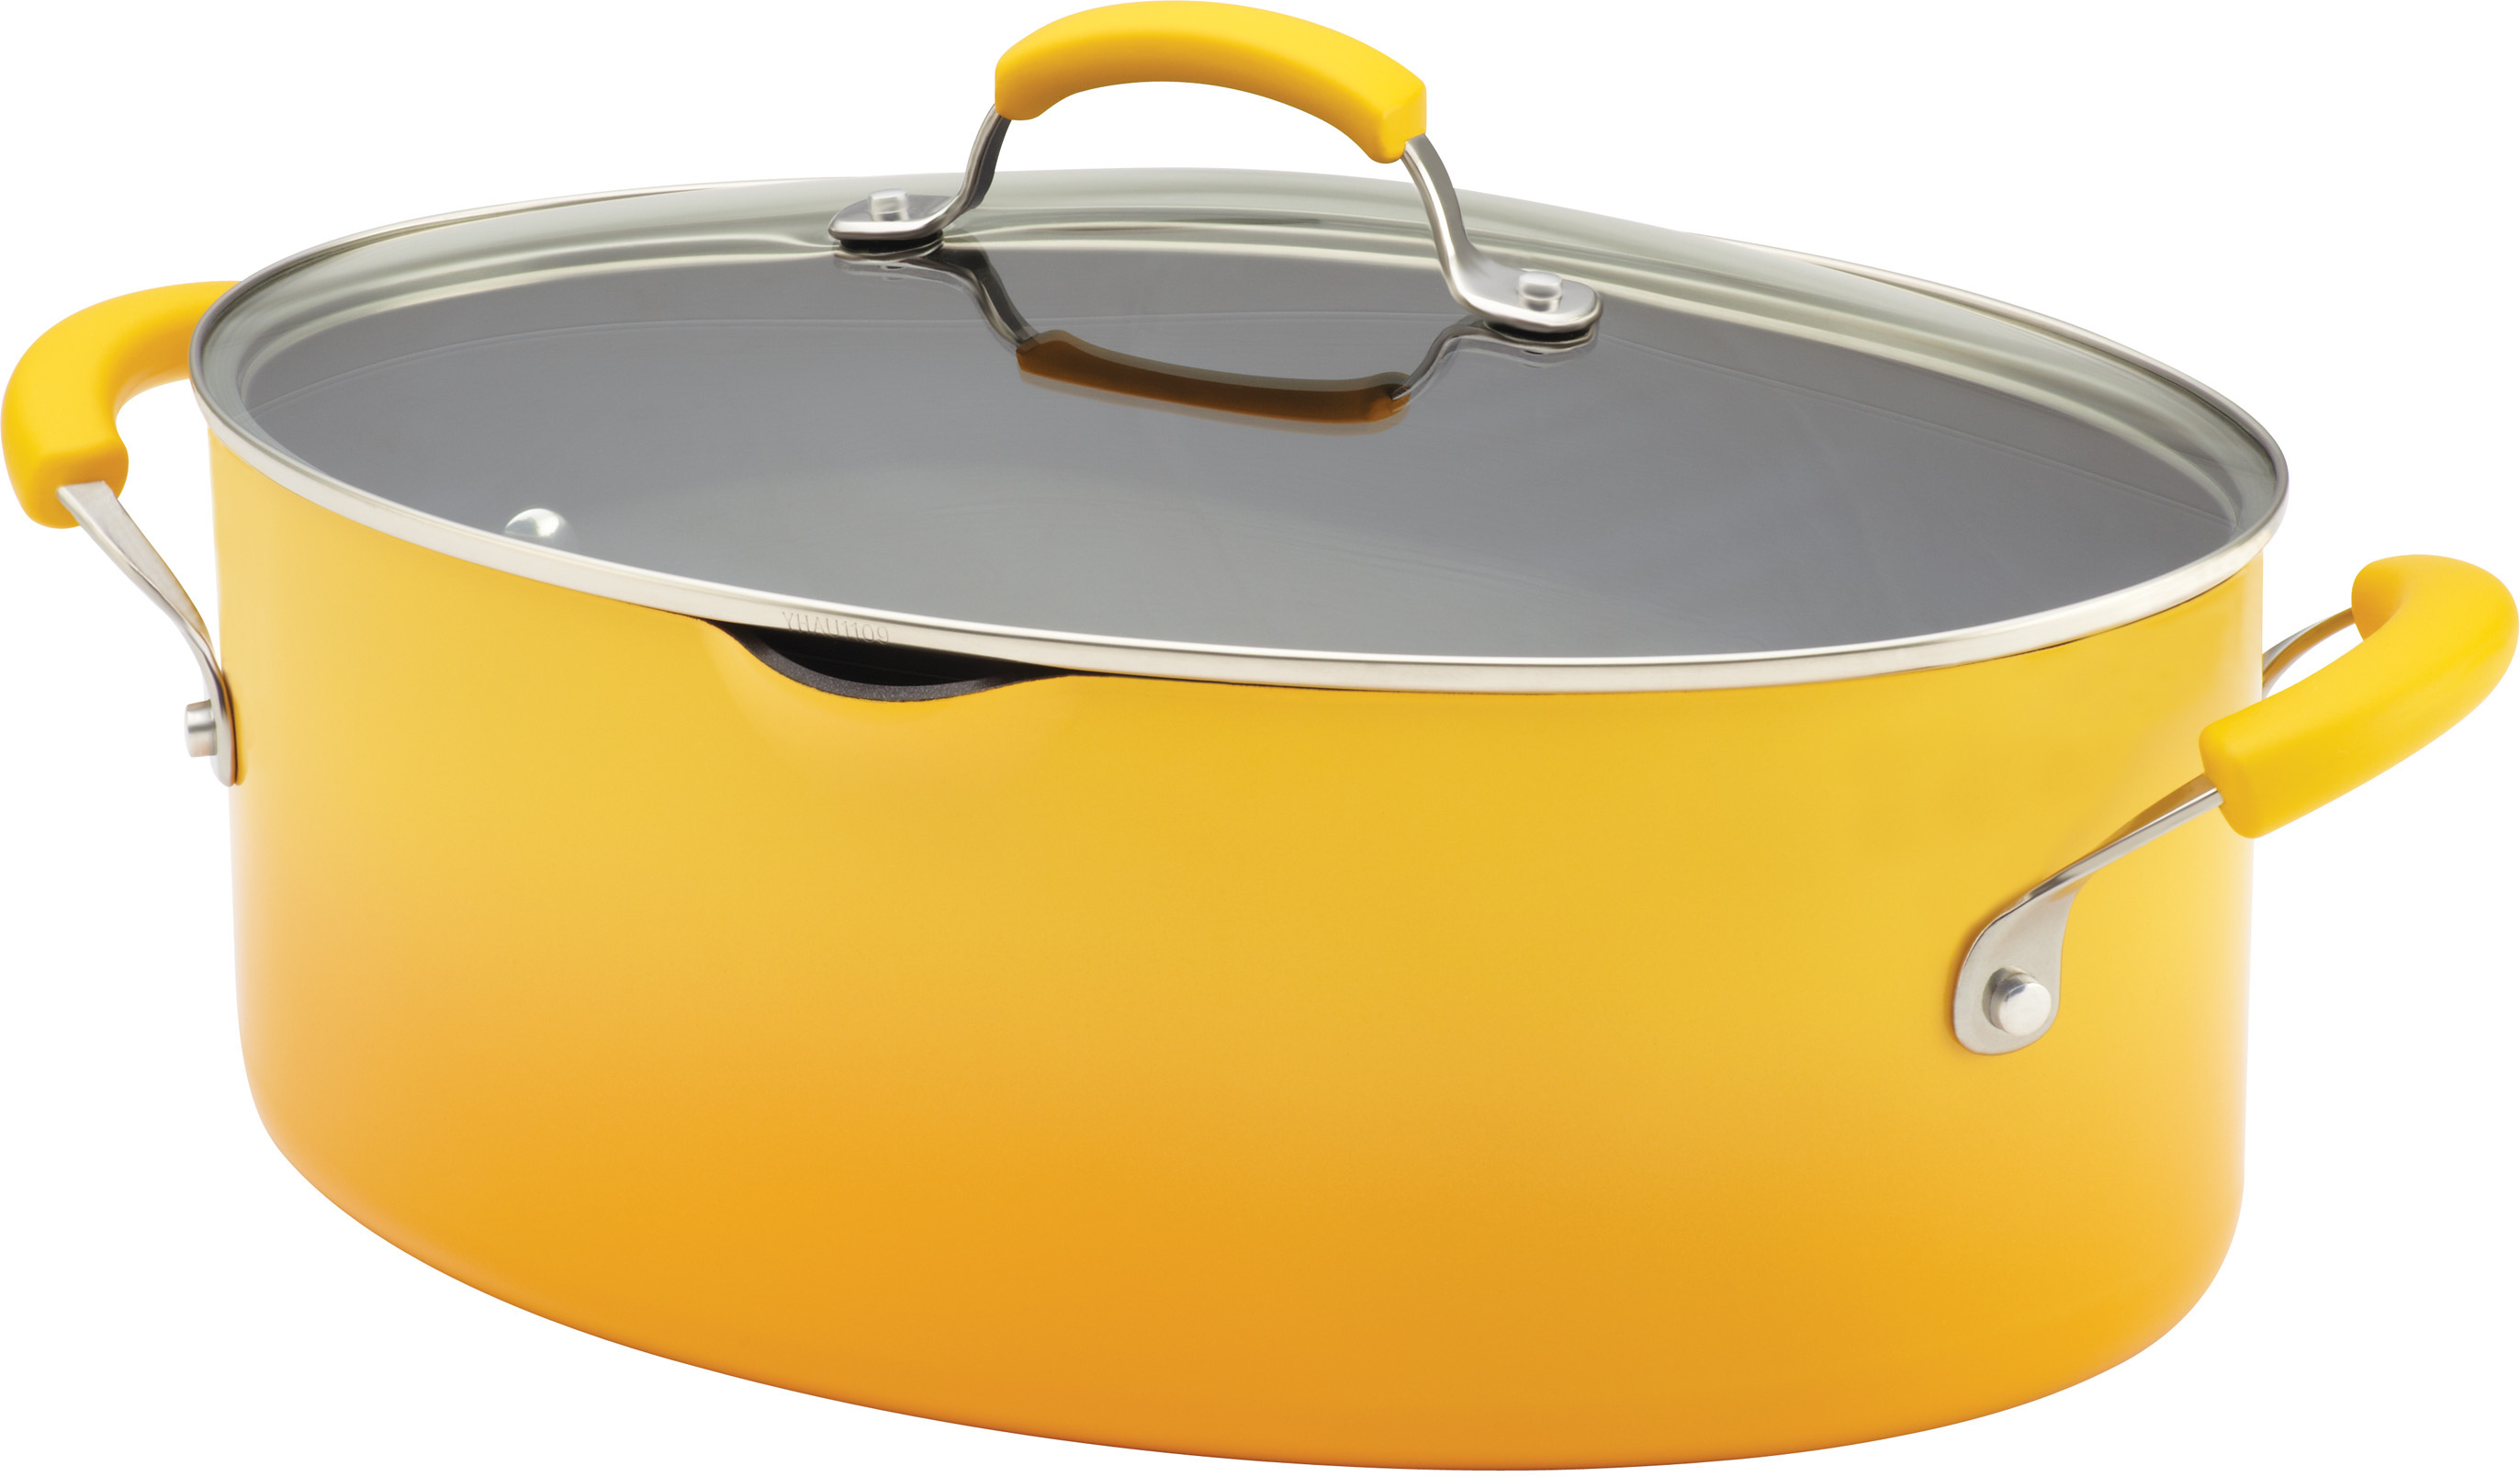 Rachael Ray Porcelain Enamel II Yellow Nonstick Covered Oval Pasta Pot with Pour Spout, 8 Quart